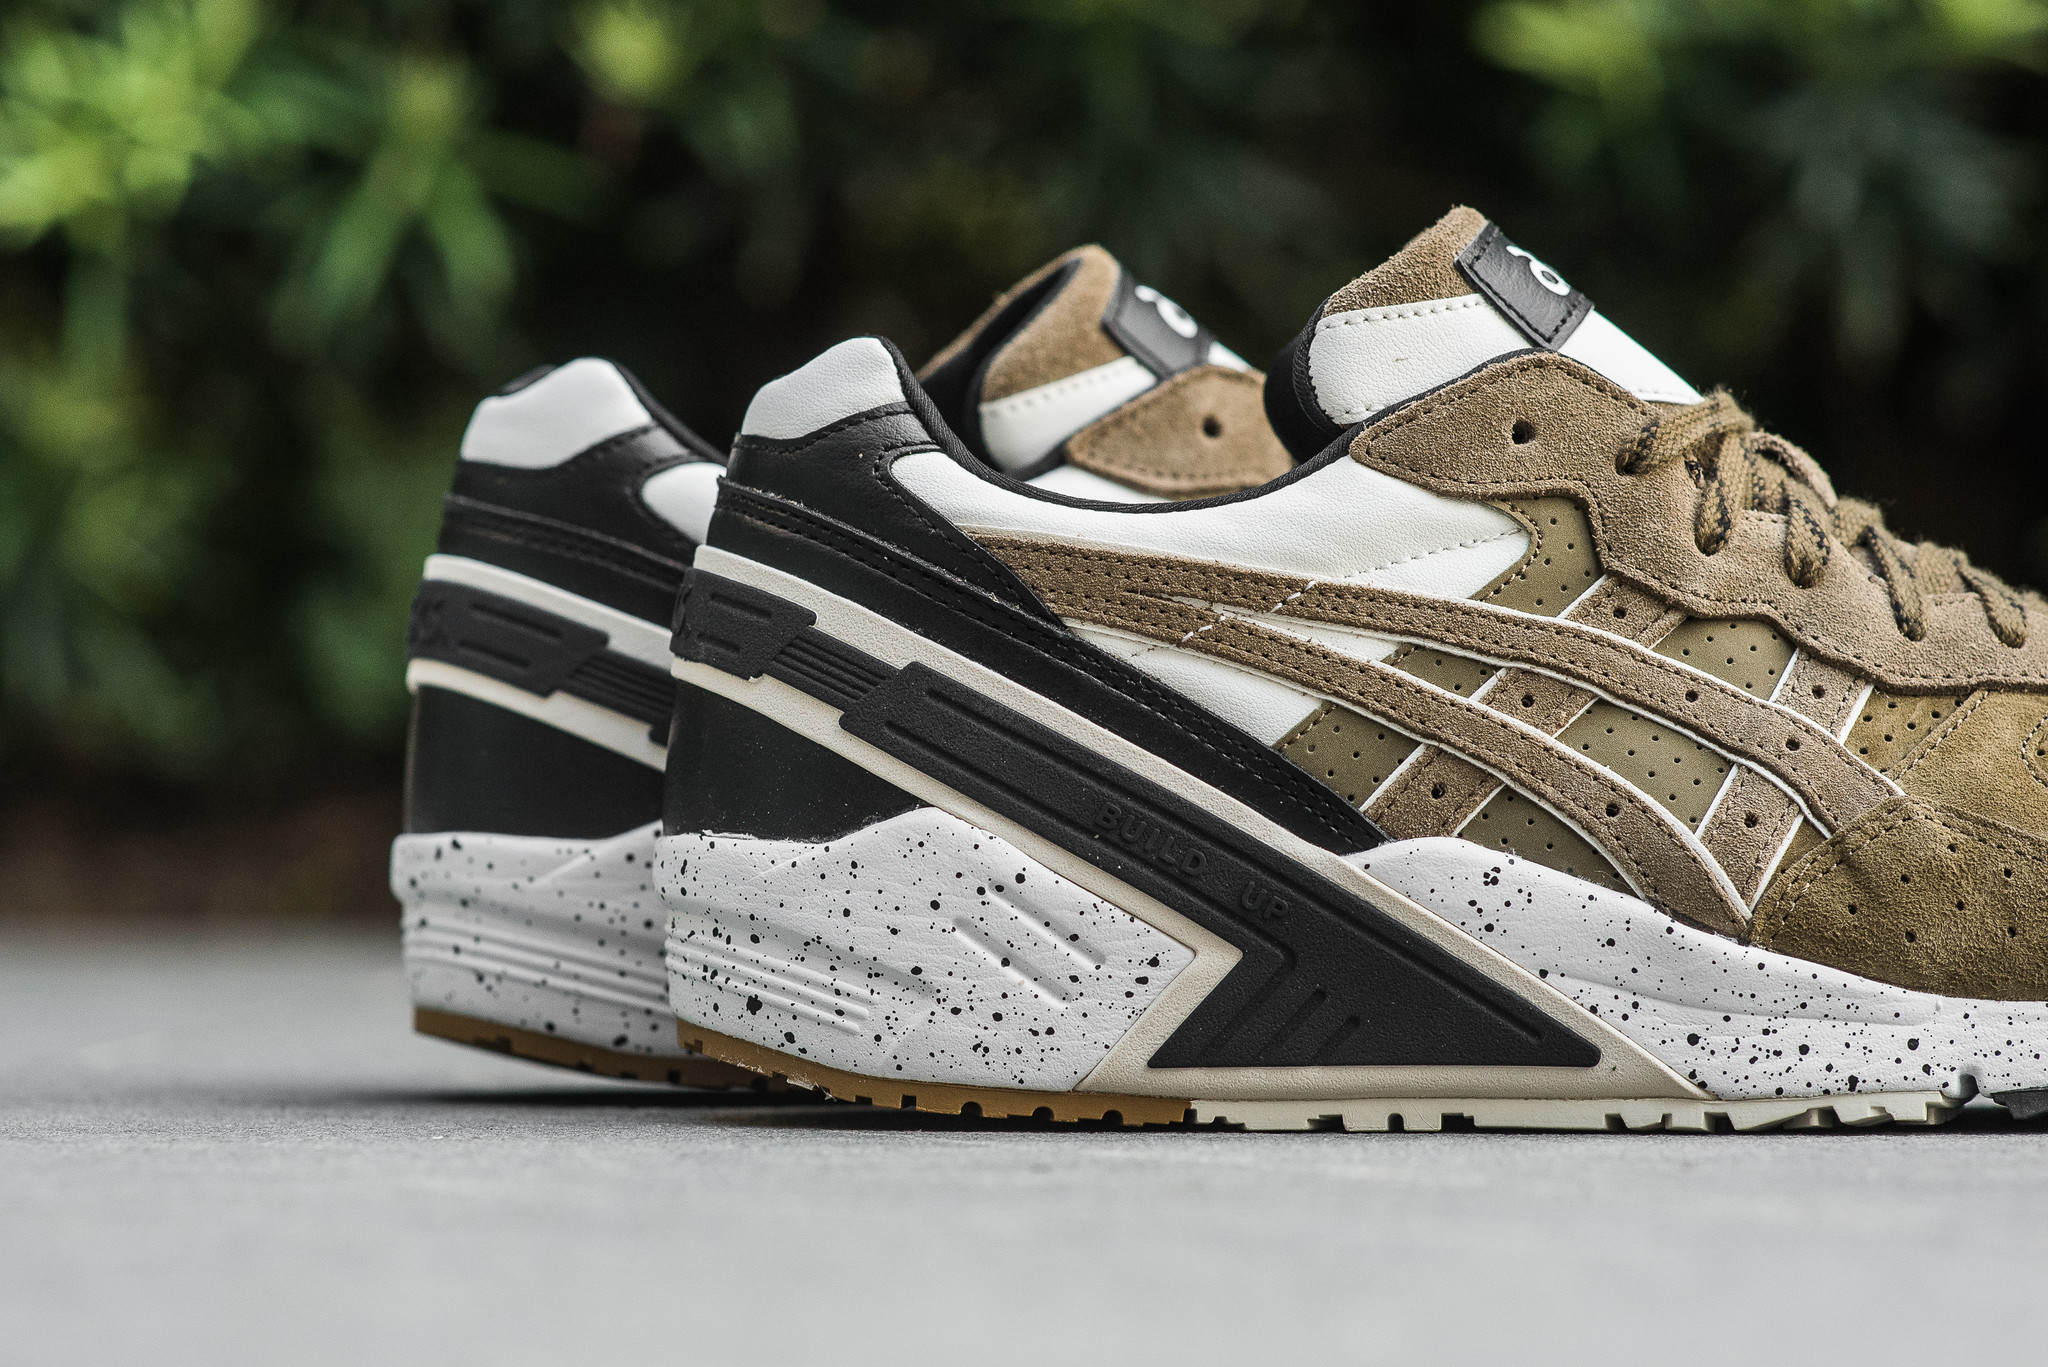 the best attitude 9beca f8060 The monkey time x Asics Gel Sight Olive Crown Arrives At ...